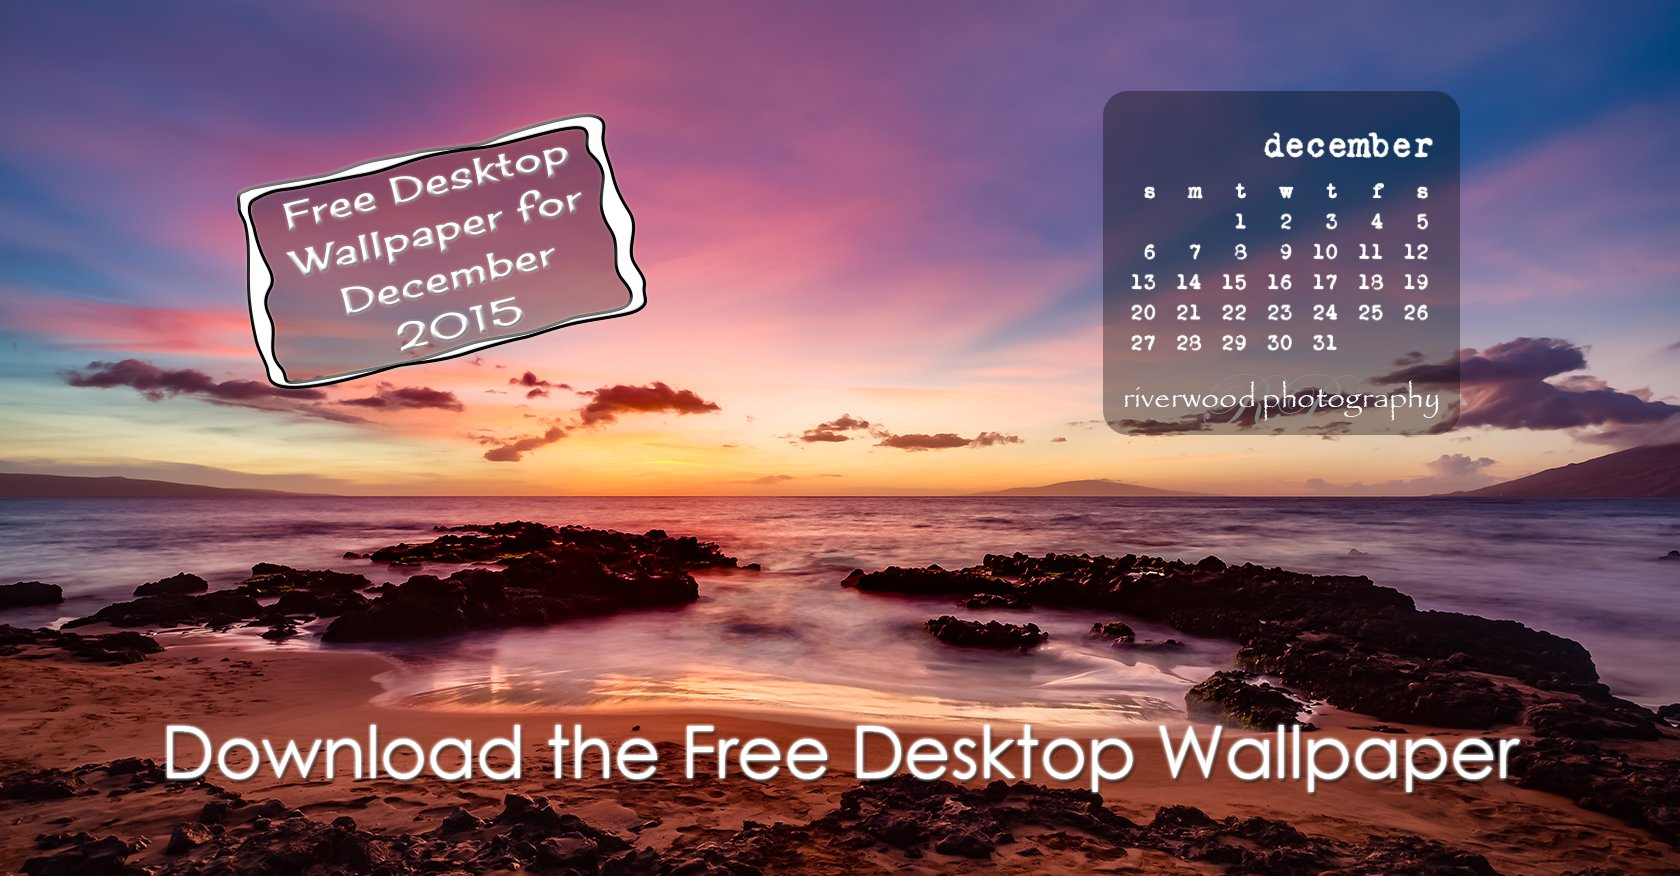 Free Desktop Wallpaper Calendar for December 2015